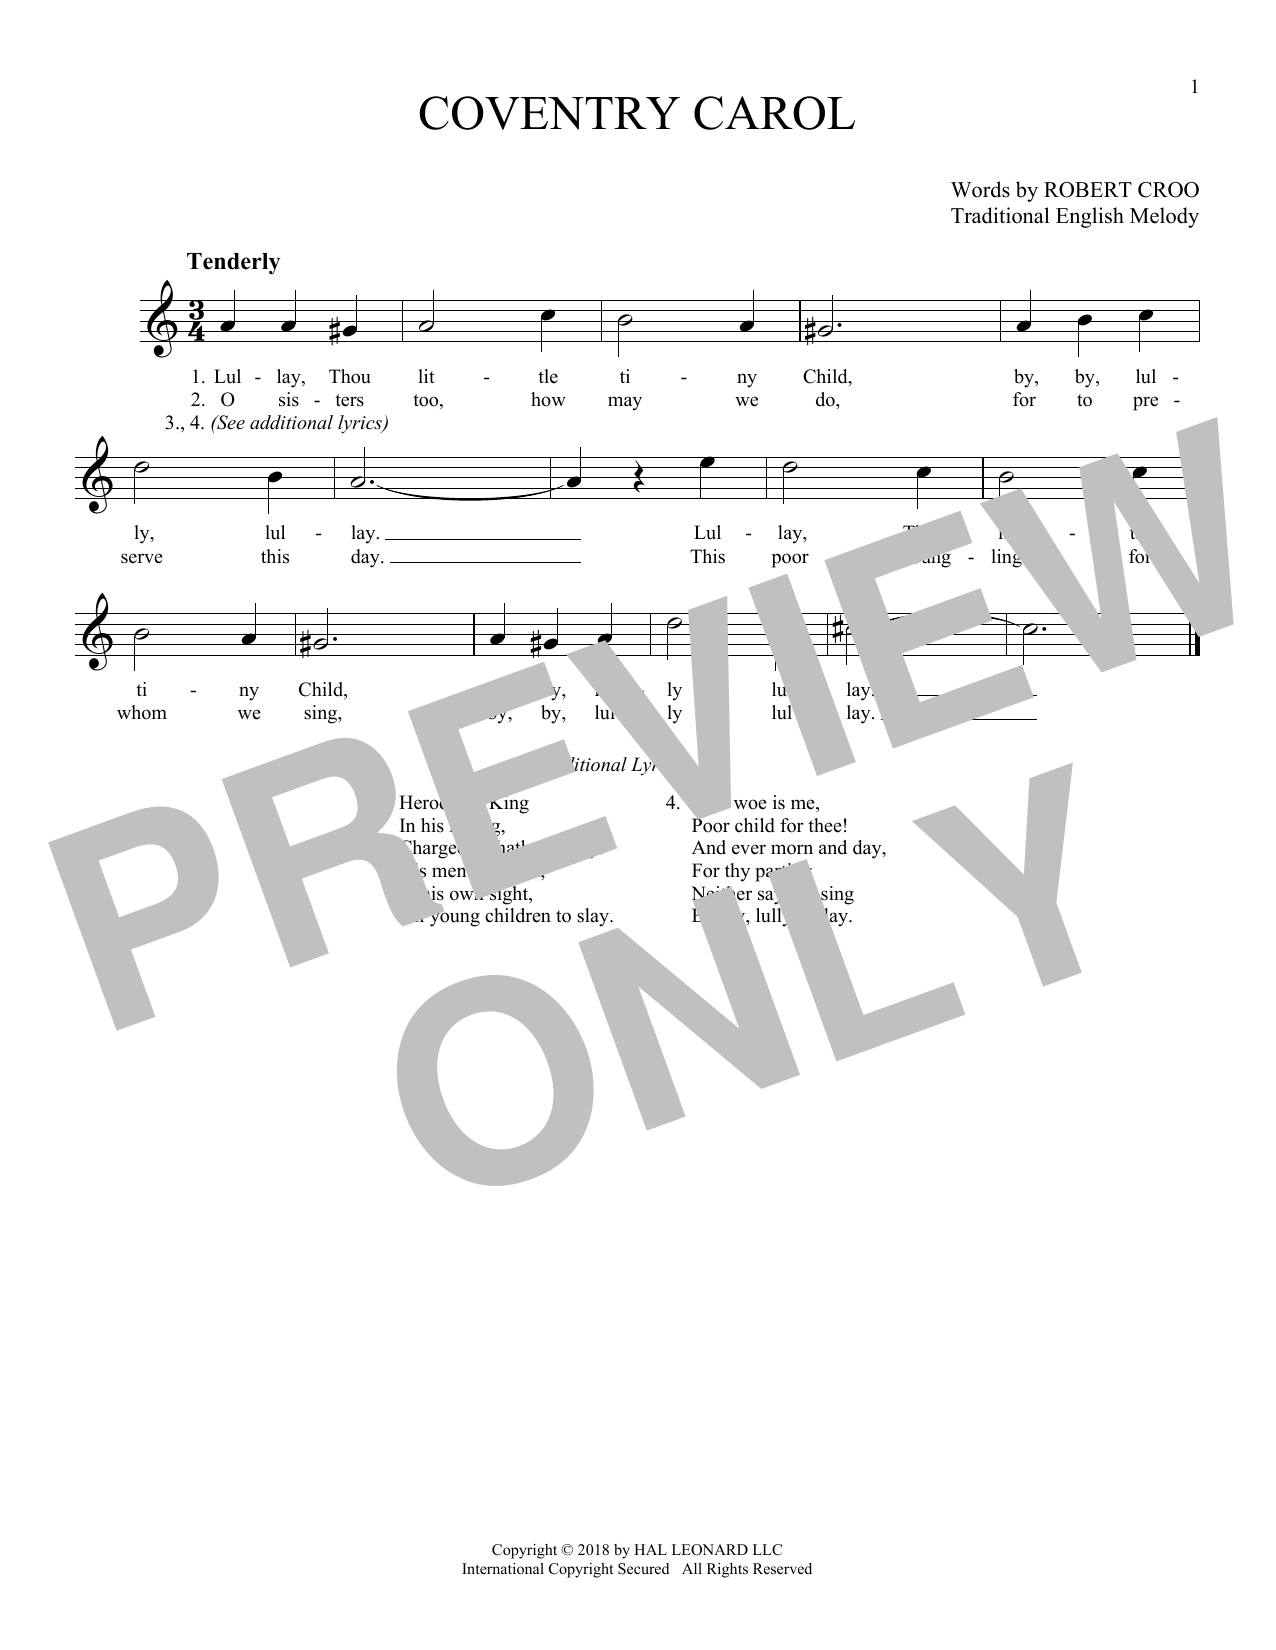 Traditional English Melody Coventry Carol sheet music notes and chords. Download Printable PDF.